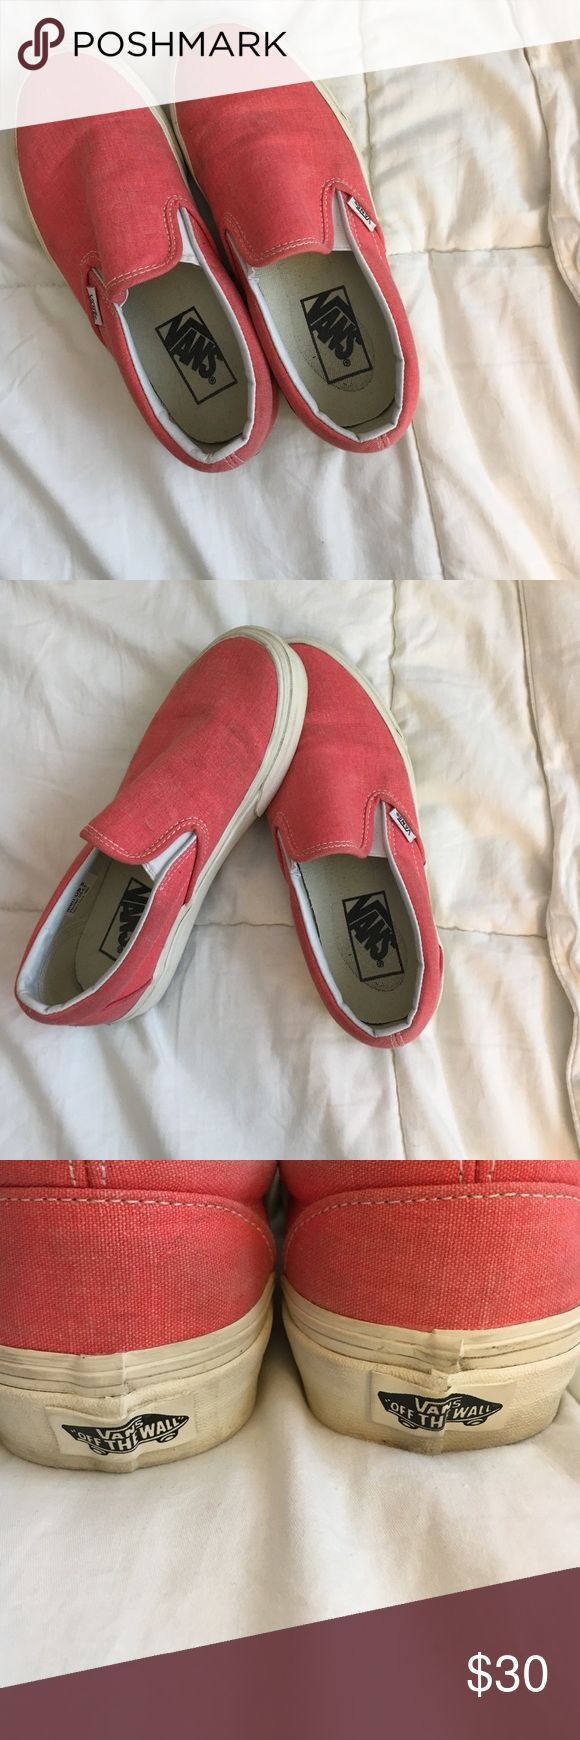 Coral Vans slip-ons In good condition coral color vans slip ons size 6.5. Vans Shoes Sneakers